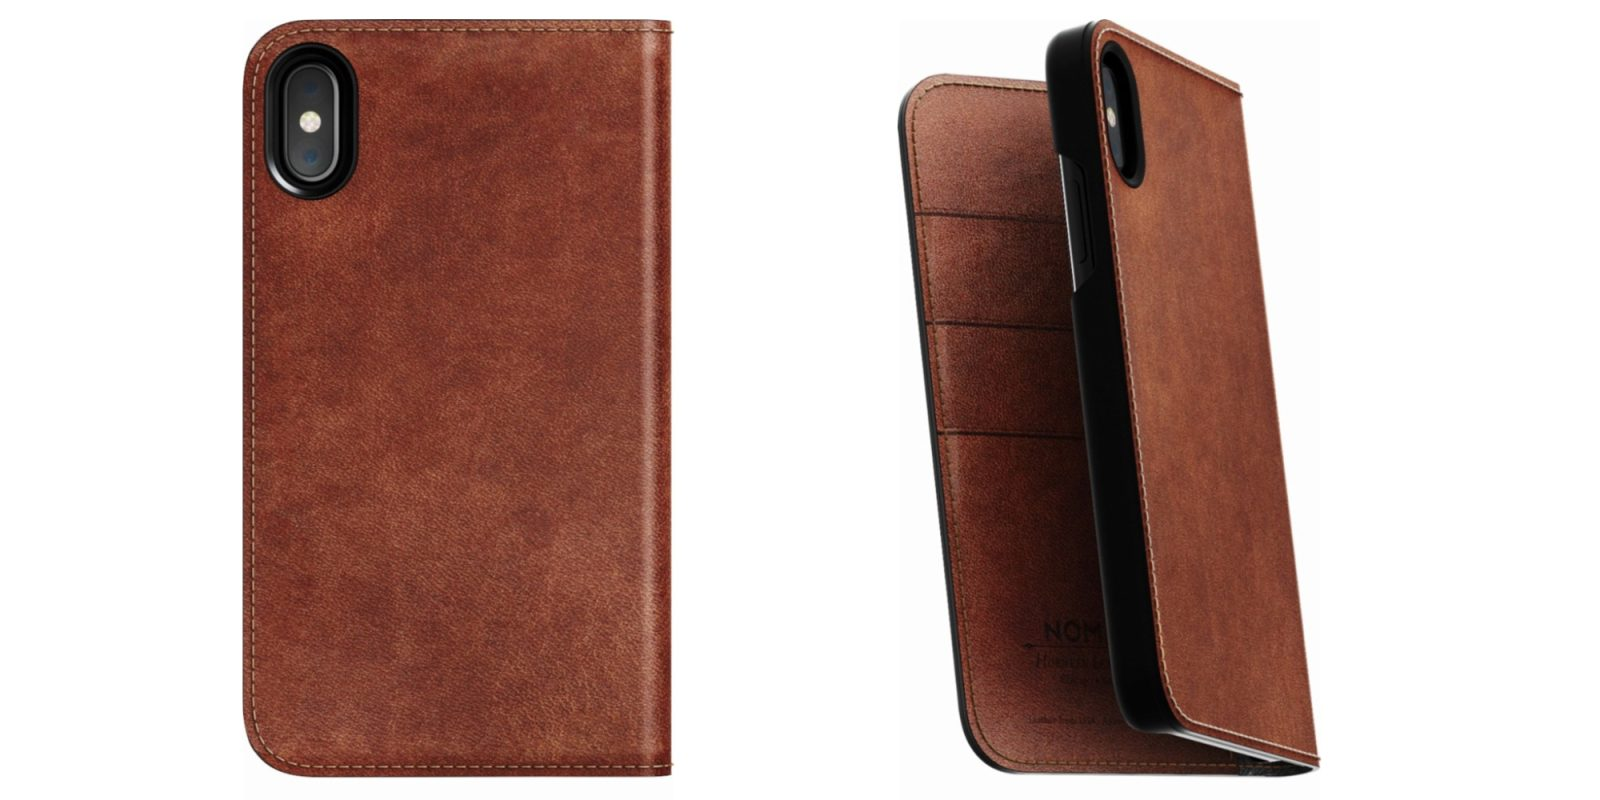 Smartphone Accessories: Nomad Leather Folio iPhone X/S Case $20, more